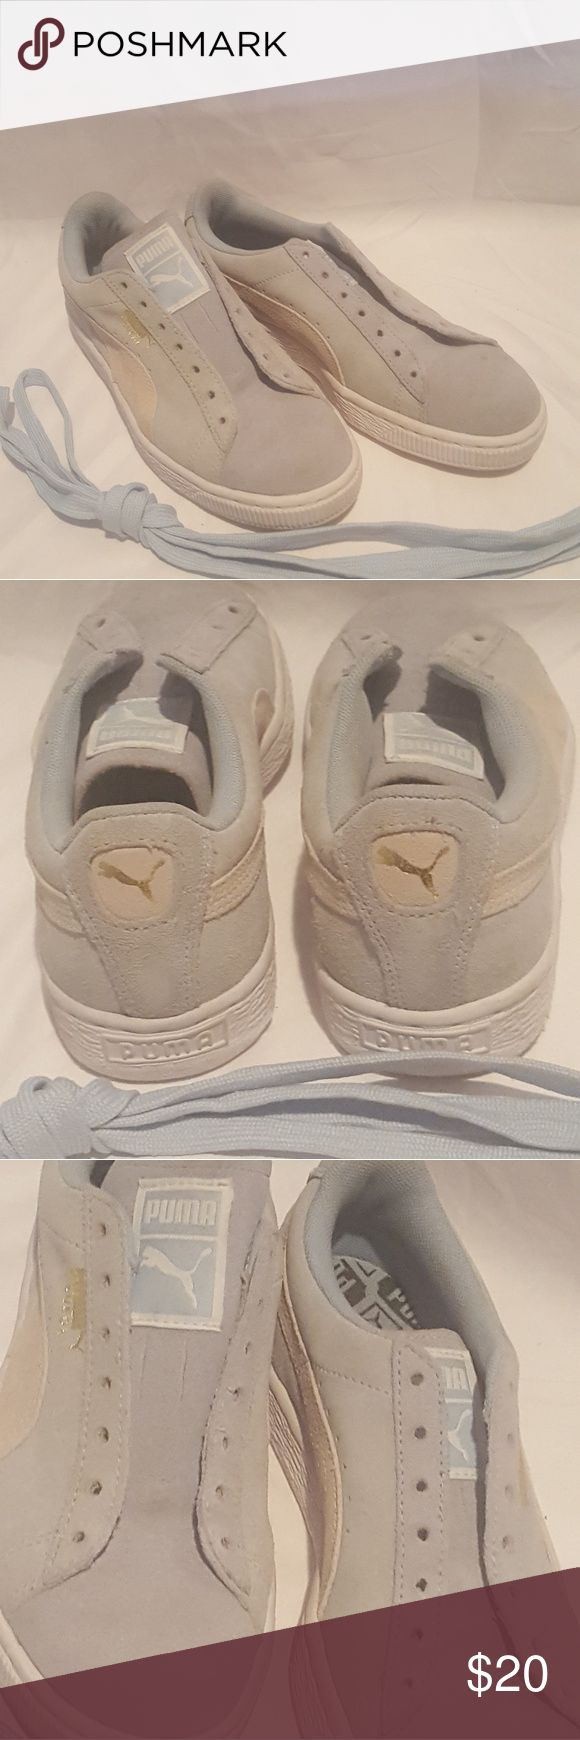 Light blue Puma's A couple stains on the toe area as shown in the picture. Other than that in great condition. Shoes Sneakers